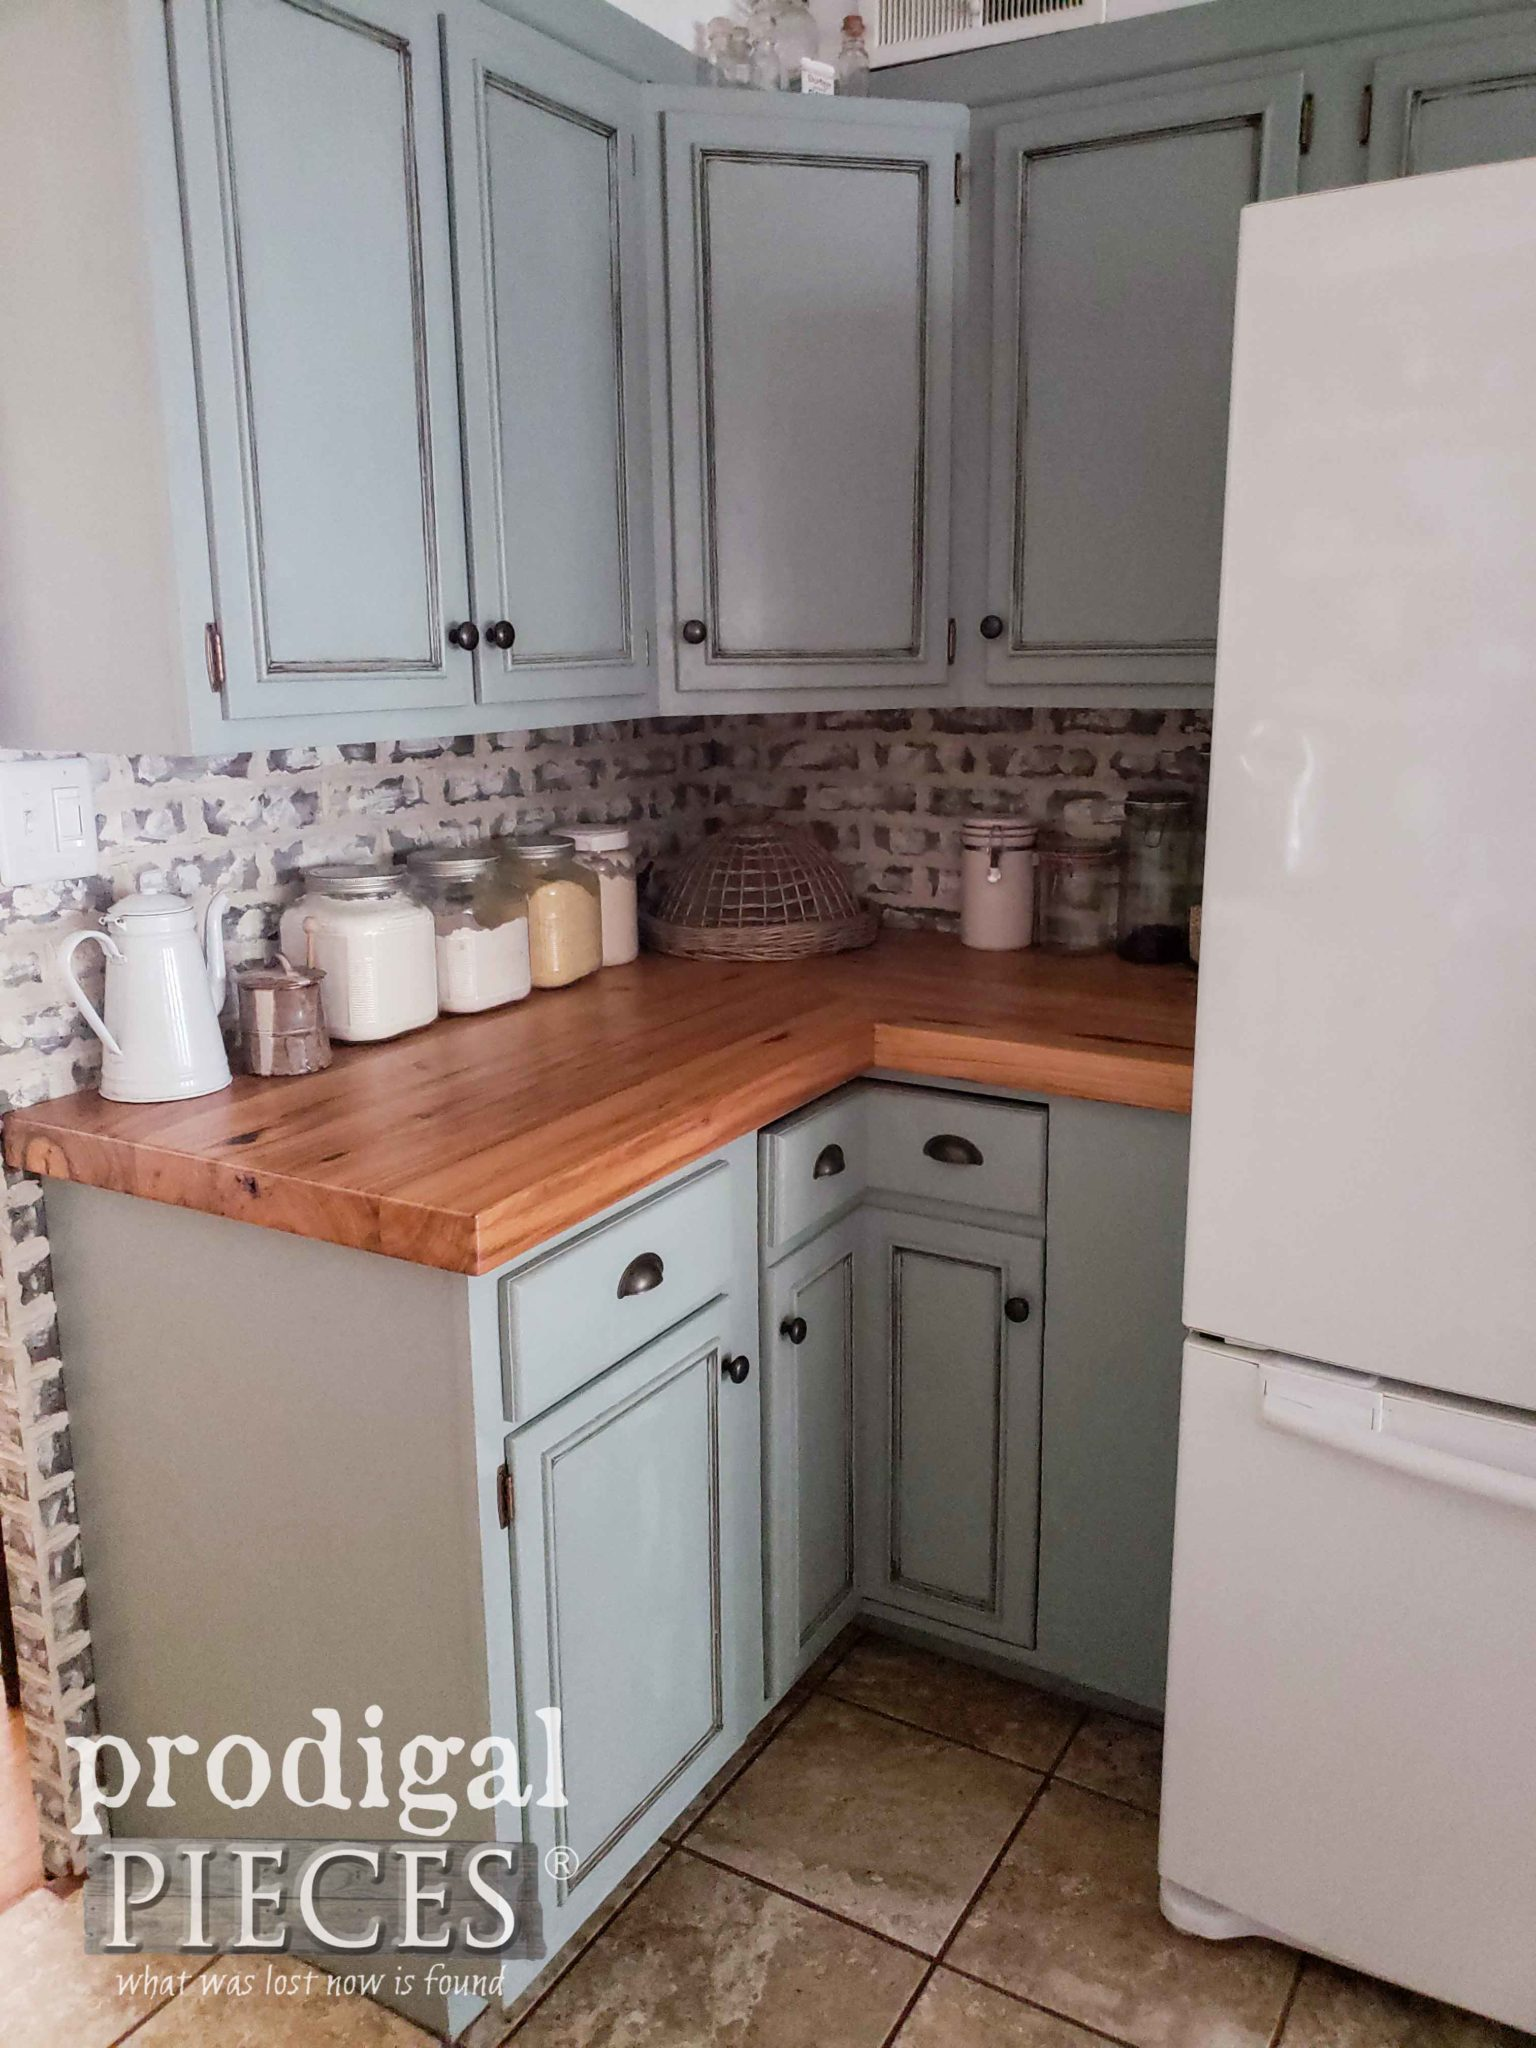 Corner Cupboards in Farmhouse Kitchen by Prodigal Pieces | prodigalpieces.com